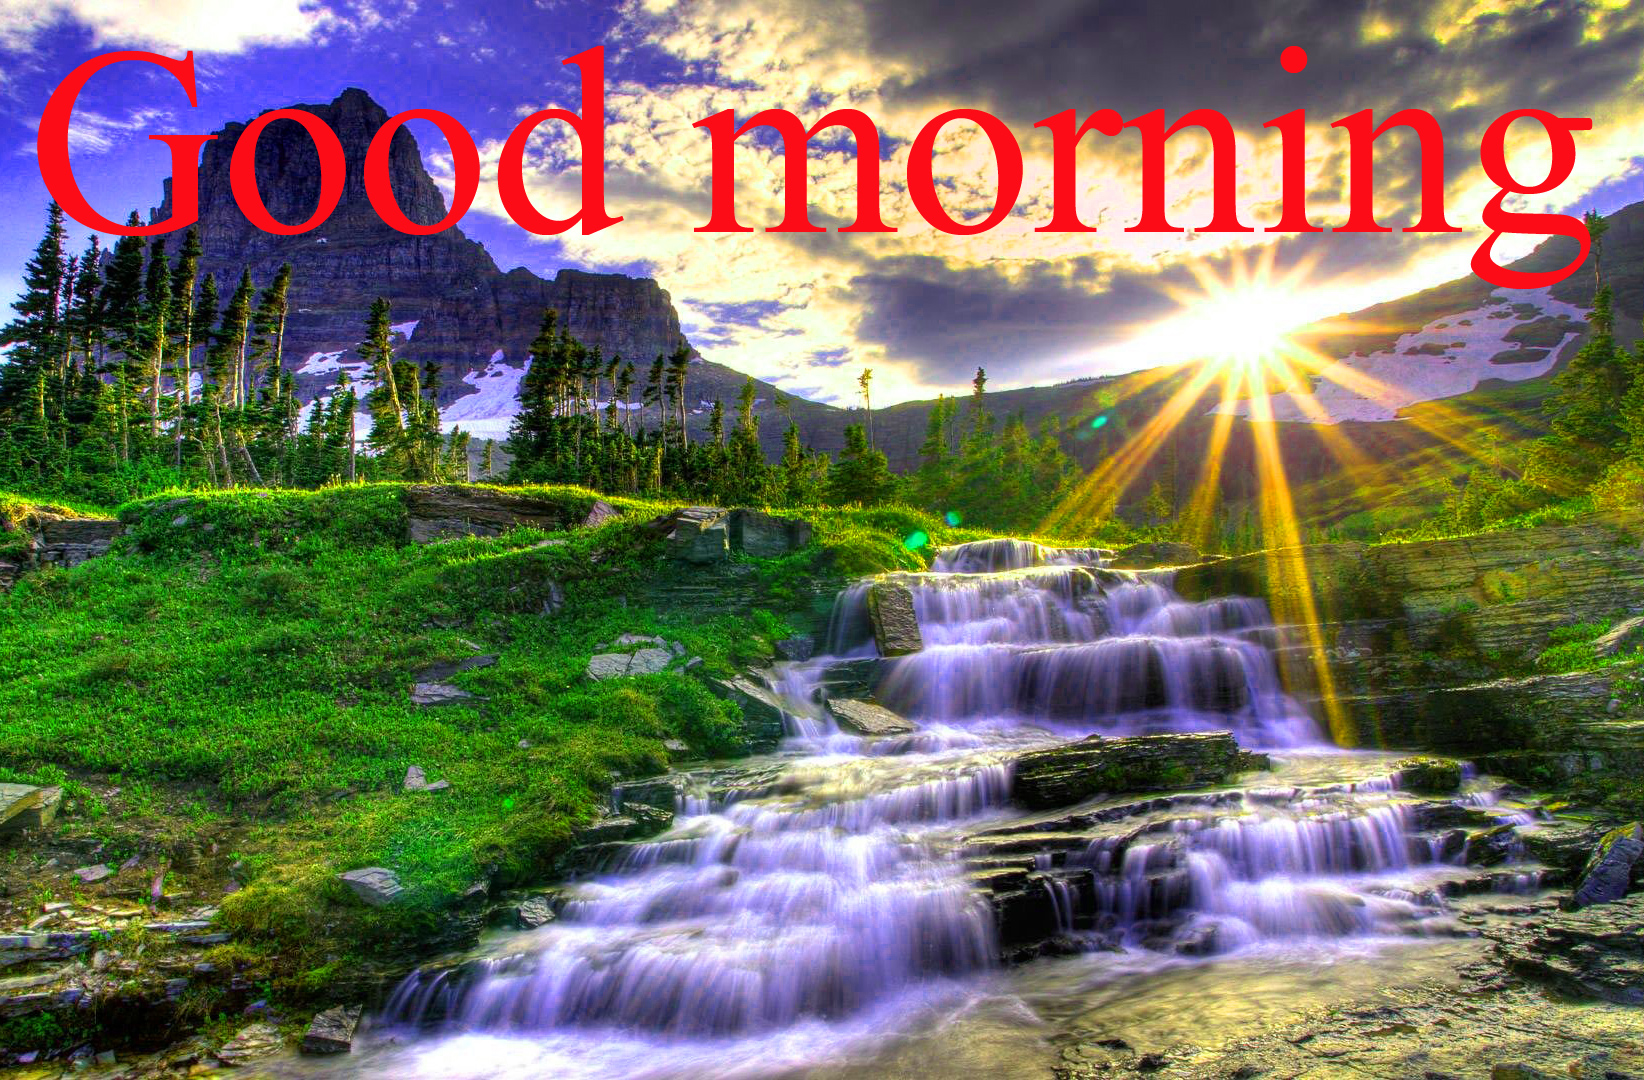 Good Morning and Good Luck Wishes For Student Images Photo Free HD